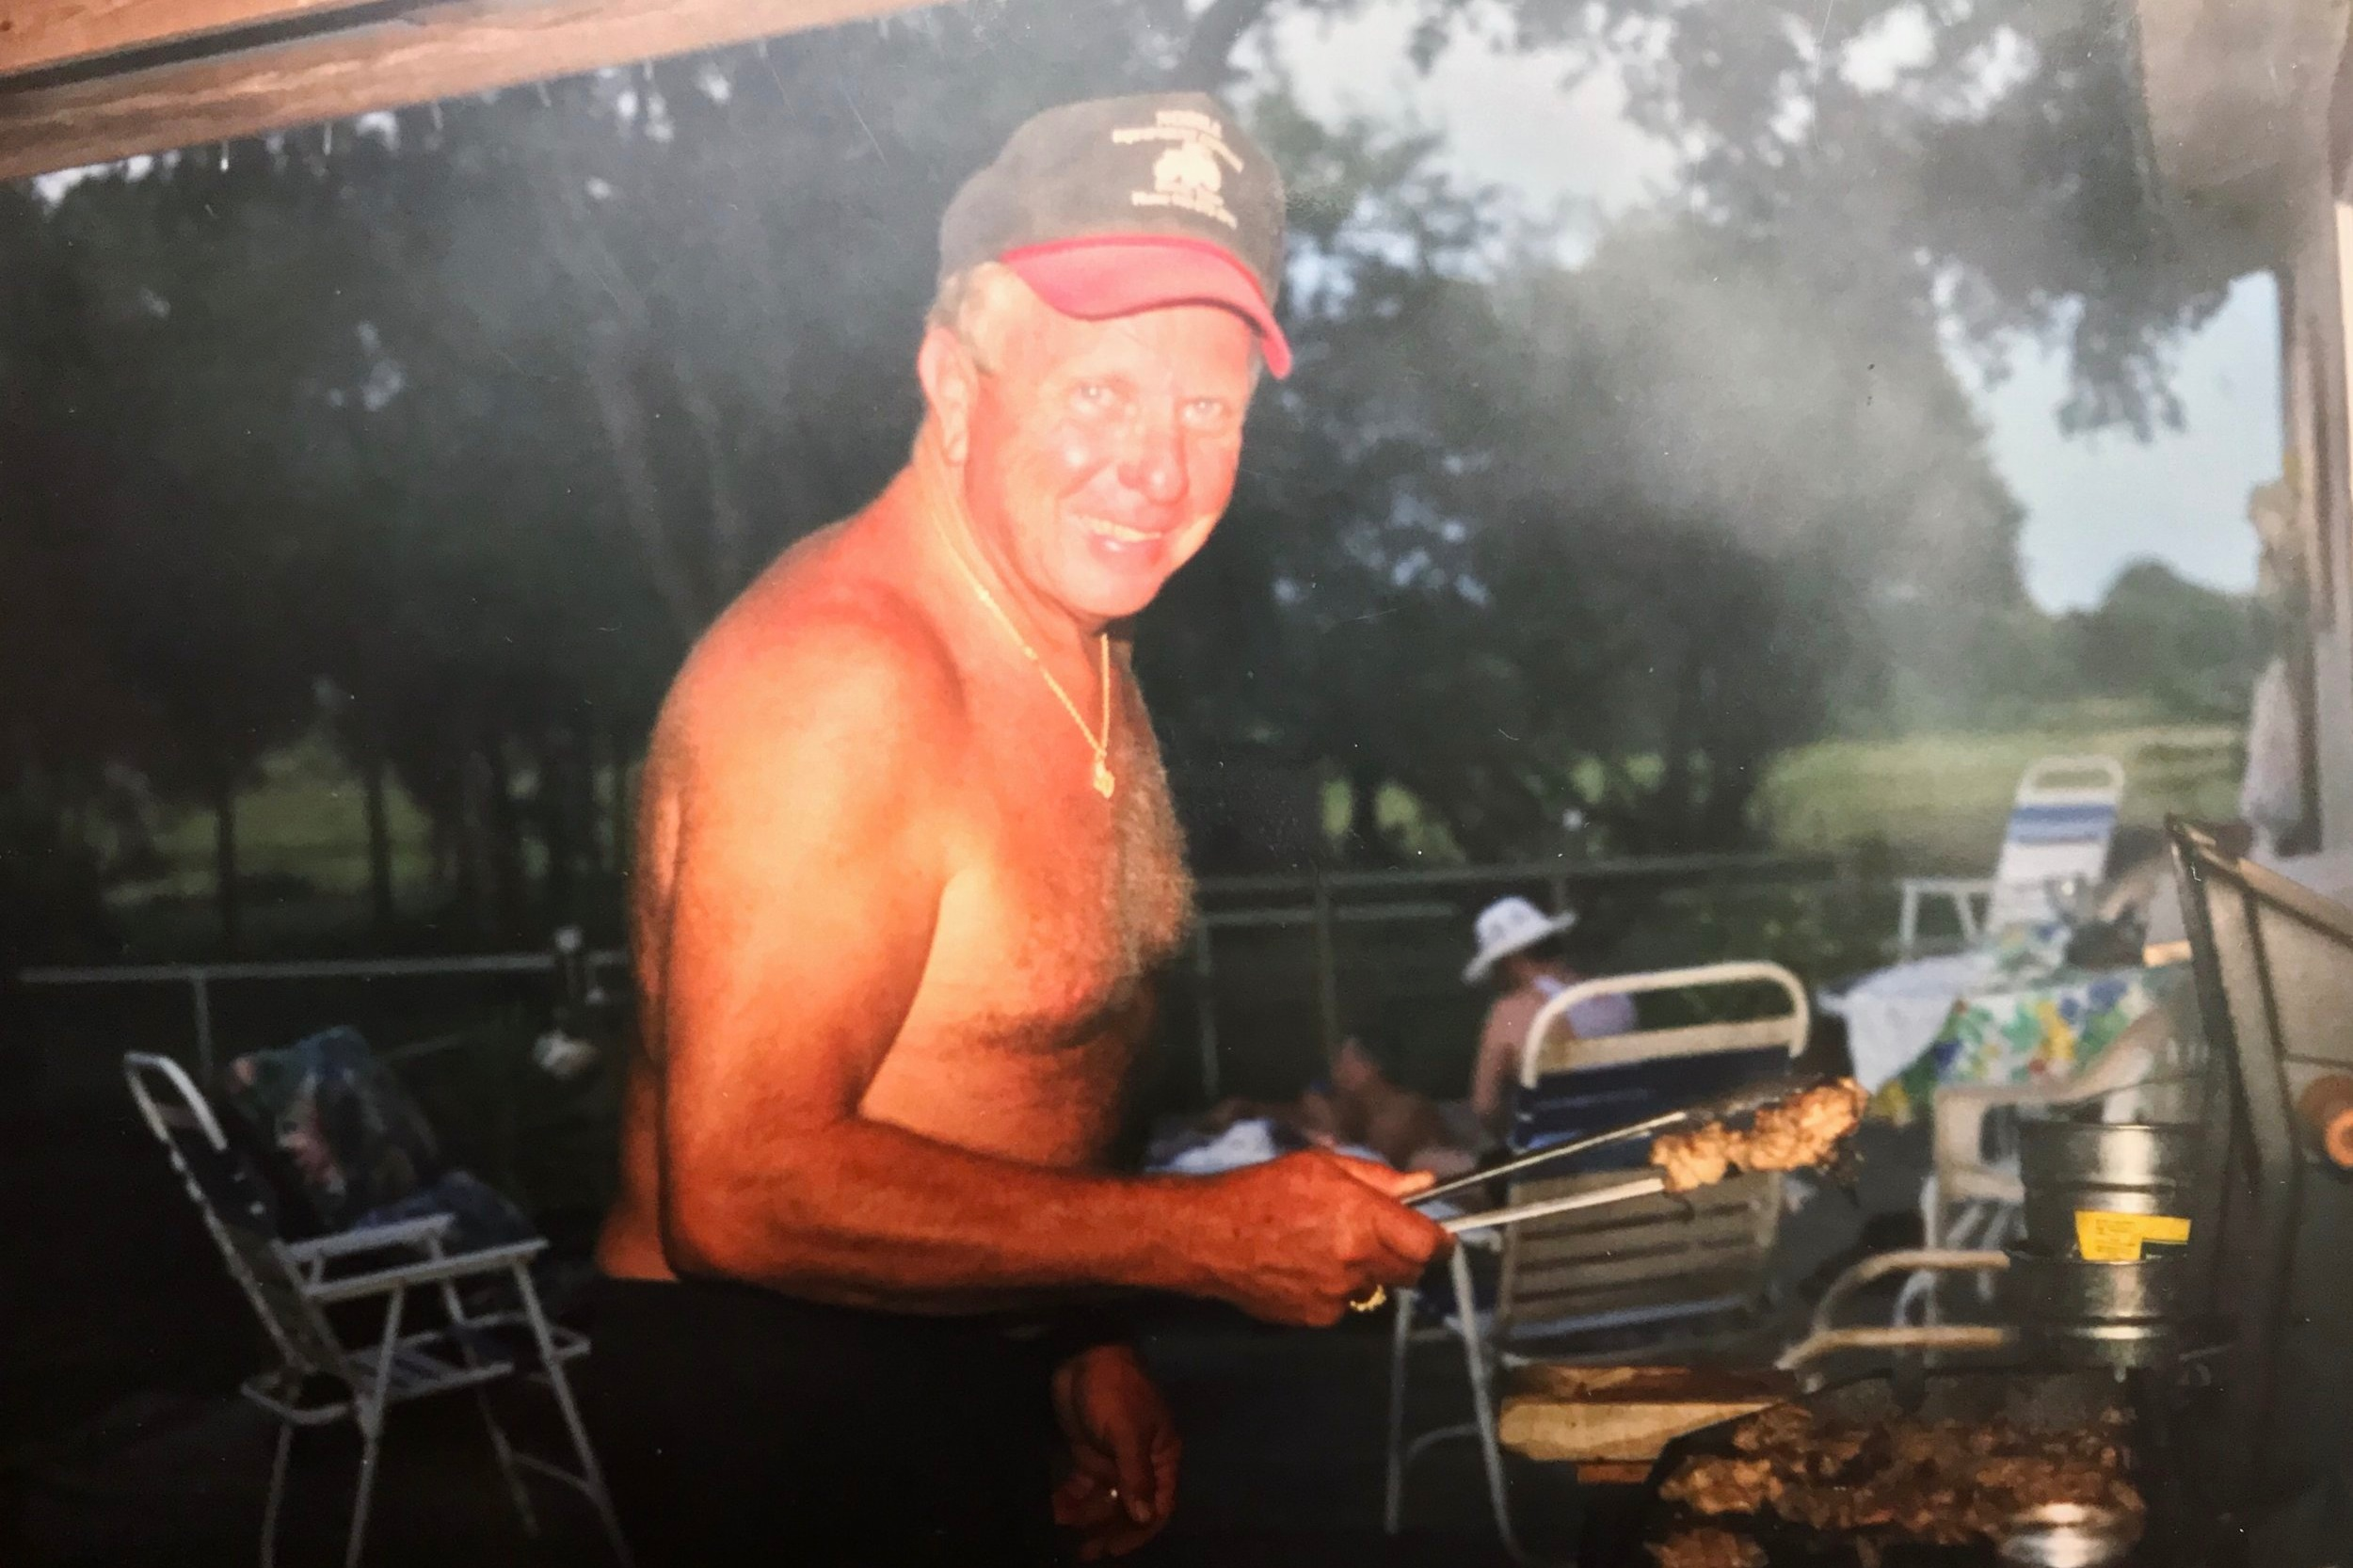 Pappy in his element: cooking for his family under the Texas sun.